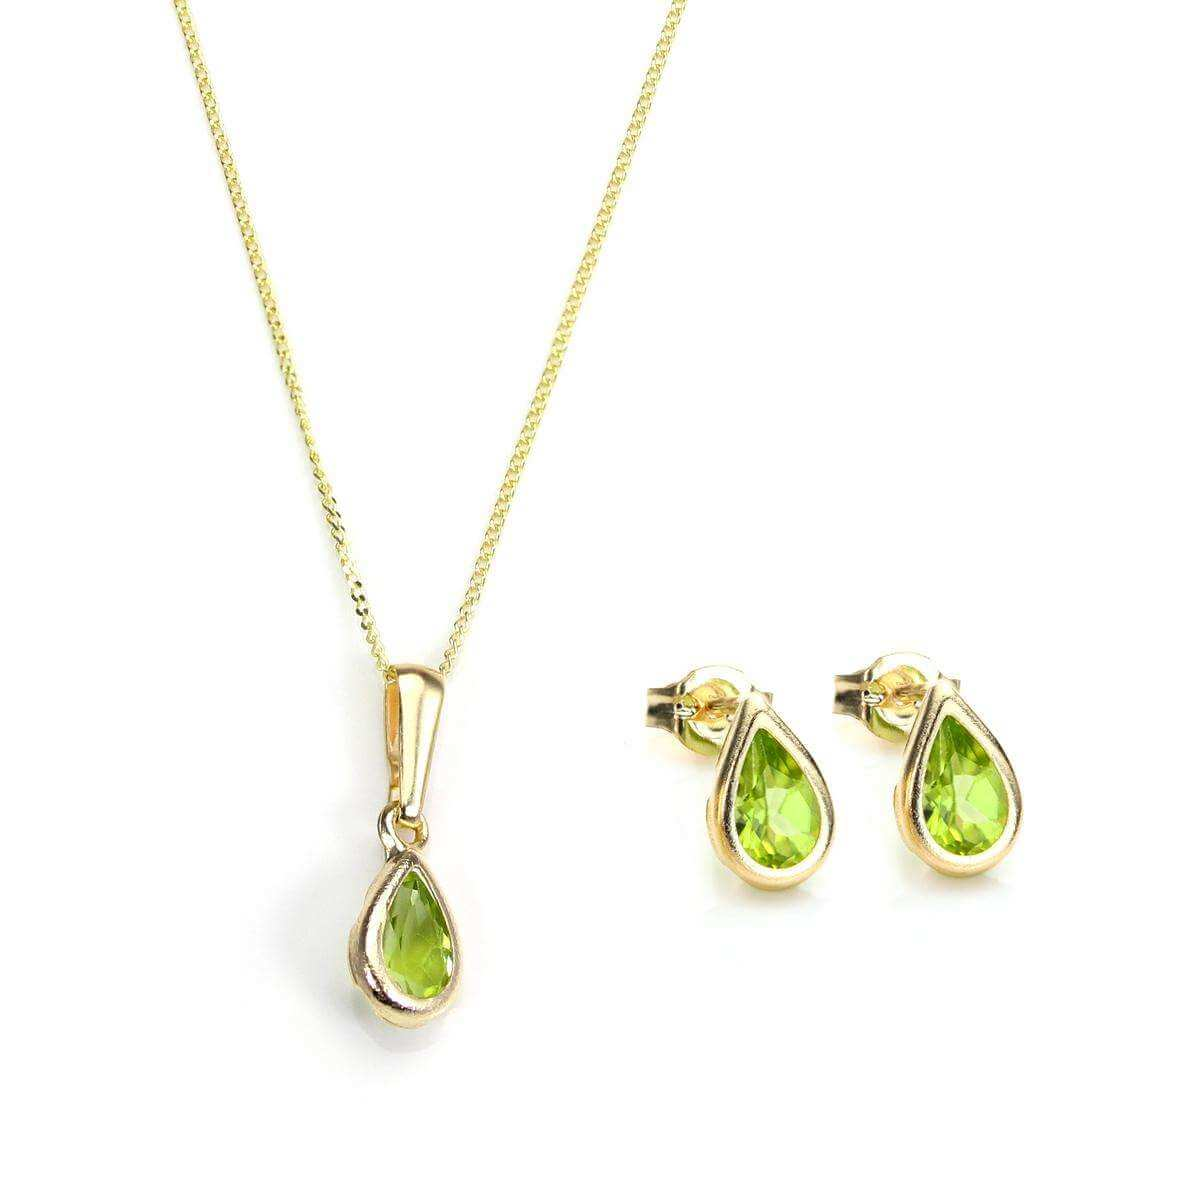 9ct Gold & August Birthstone Pendant & Stud Earrings Set